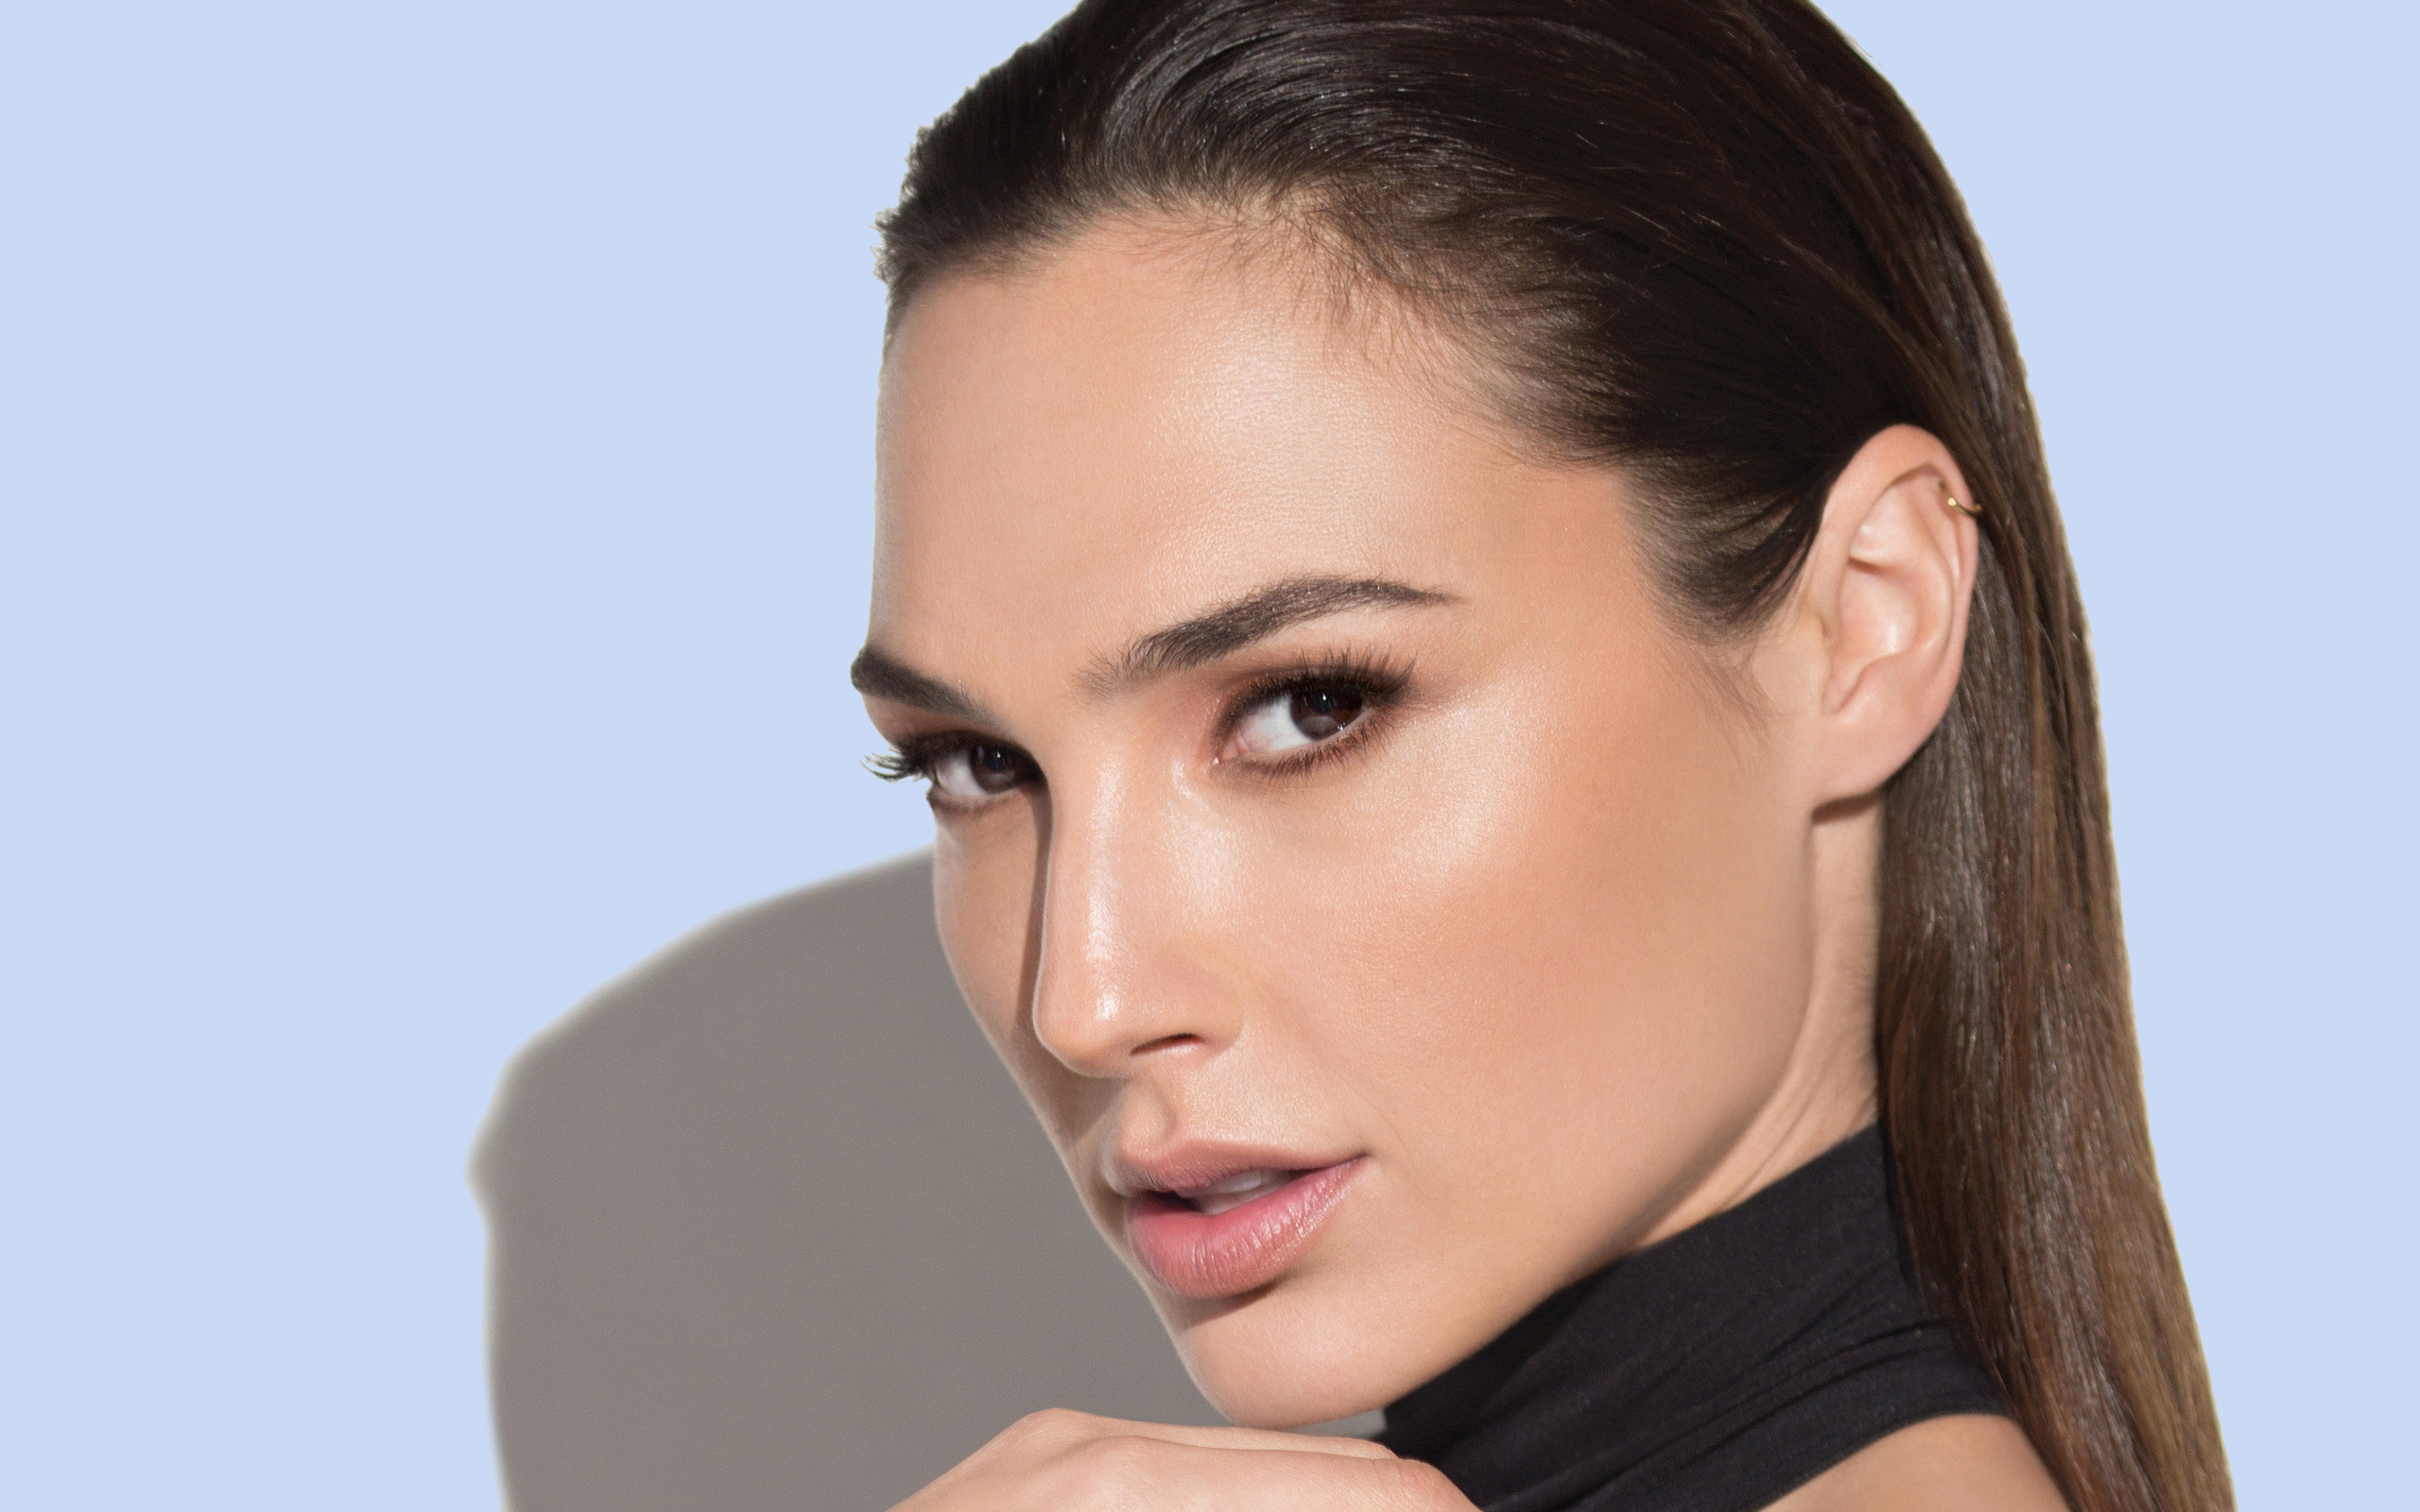 Gal Gadot Hair Design - Gal Gadot Net Worth, Pics, Wallpapers, Career and Biography